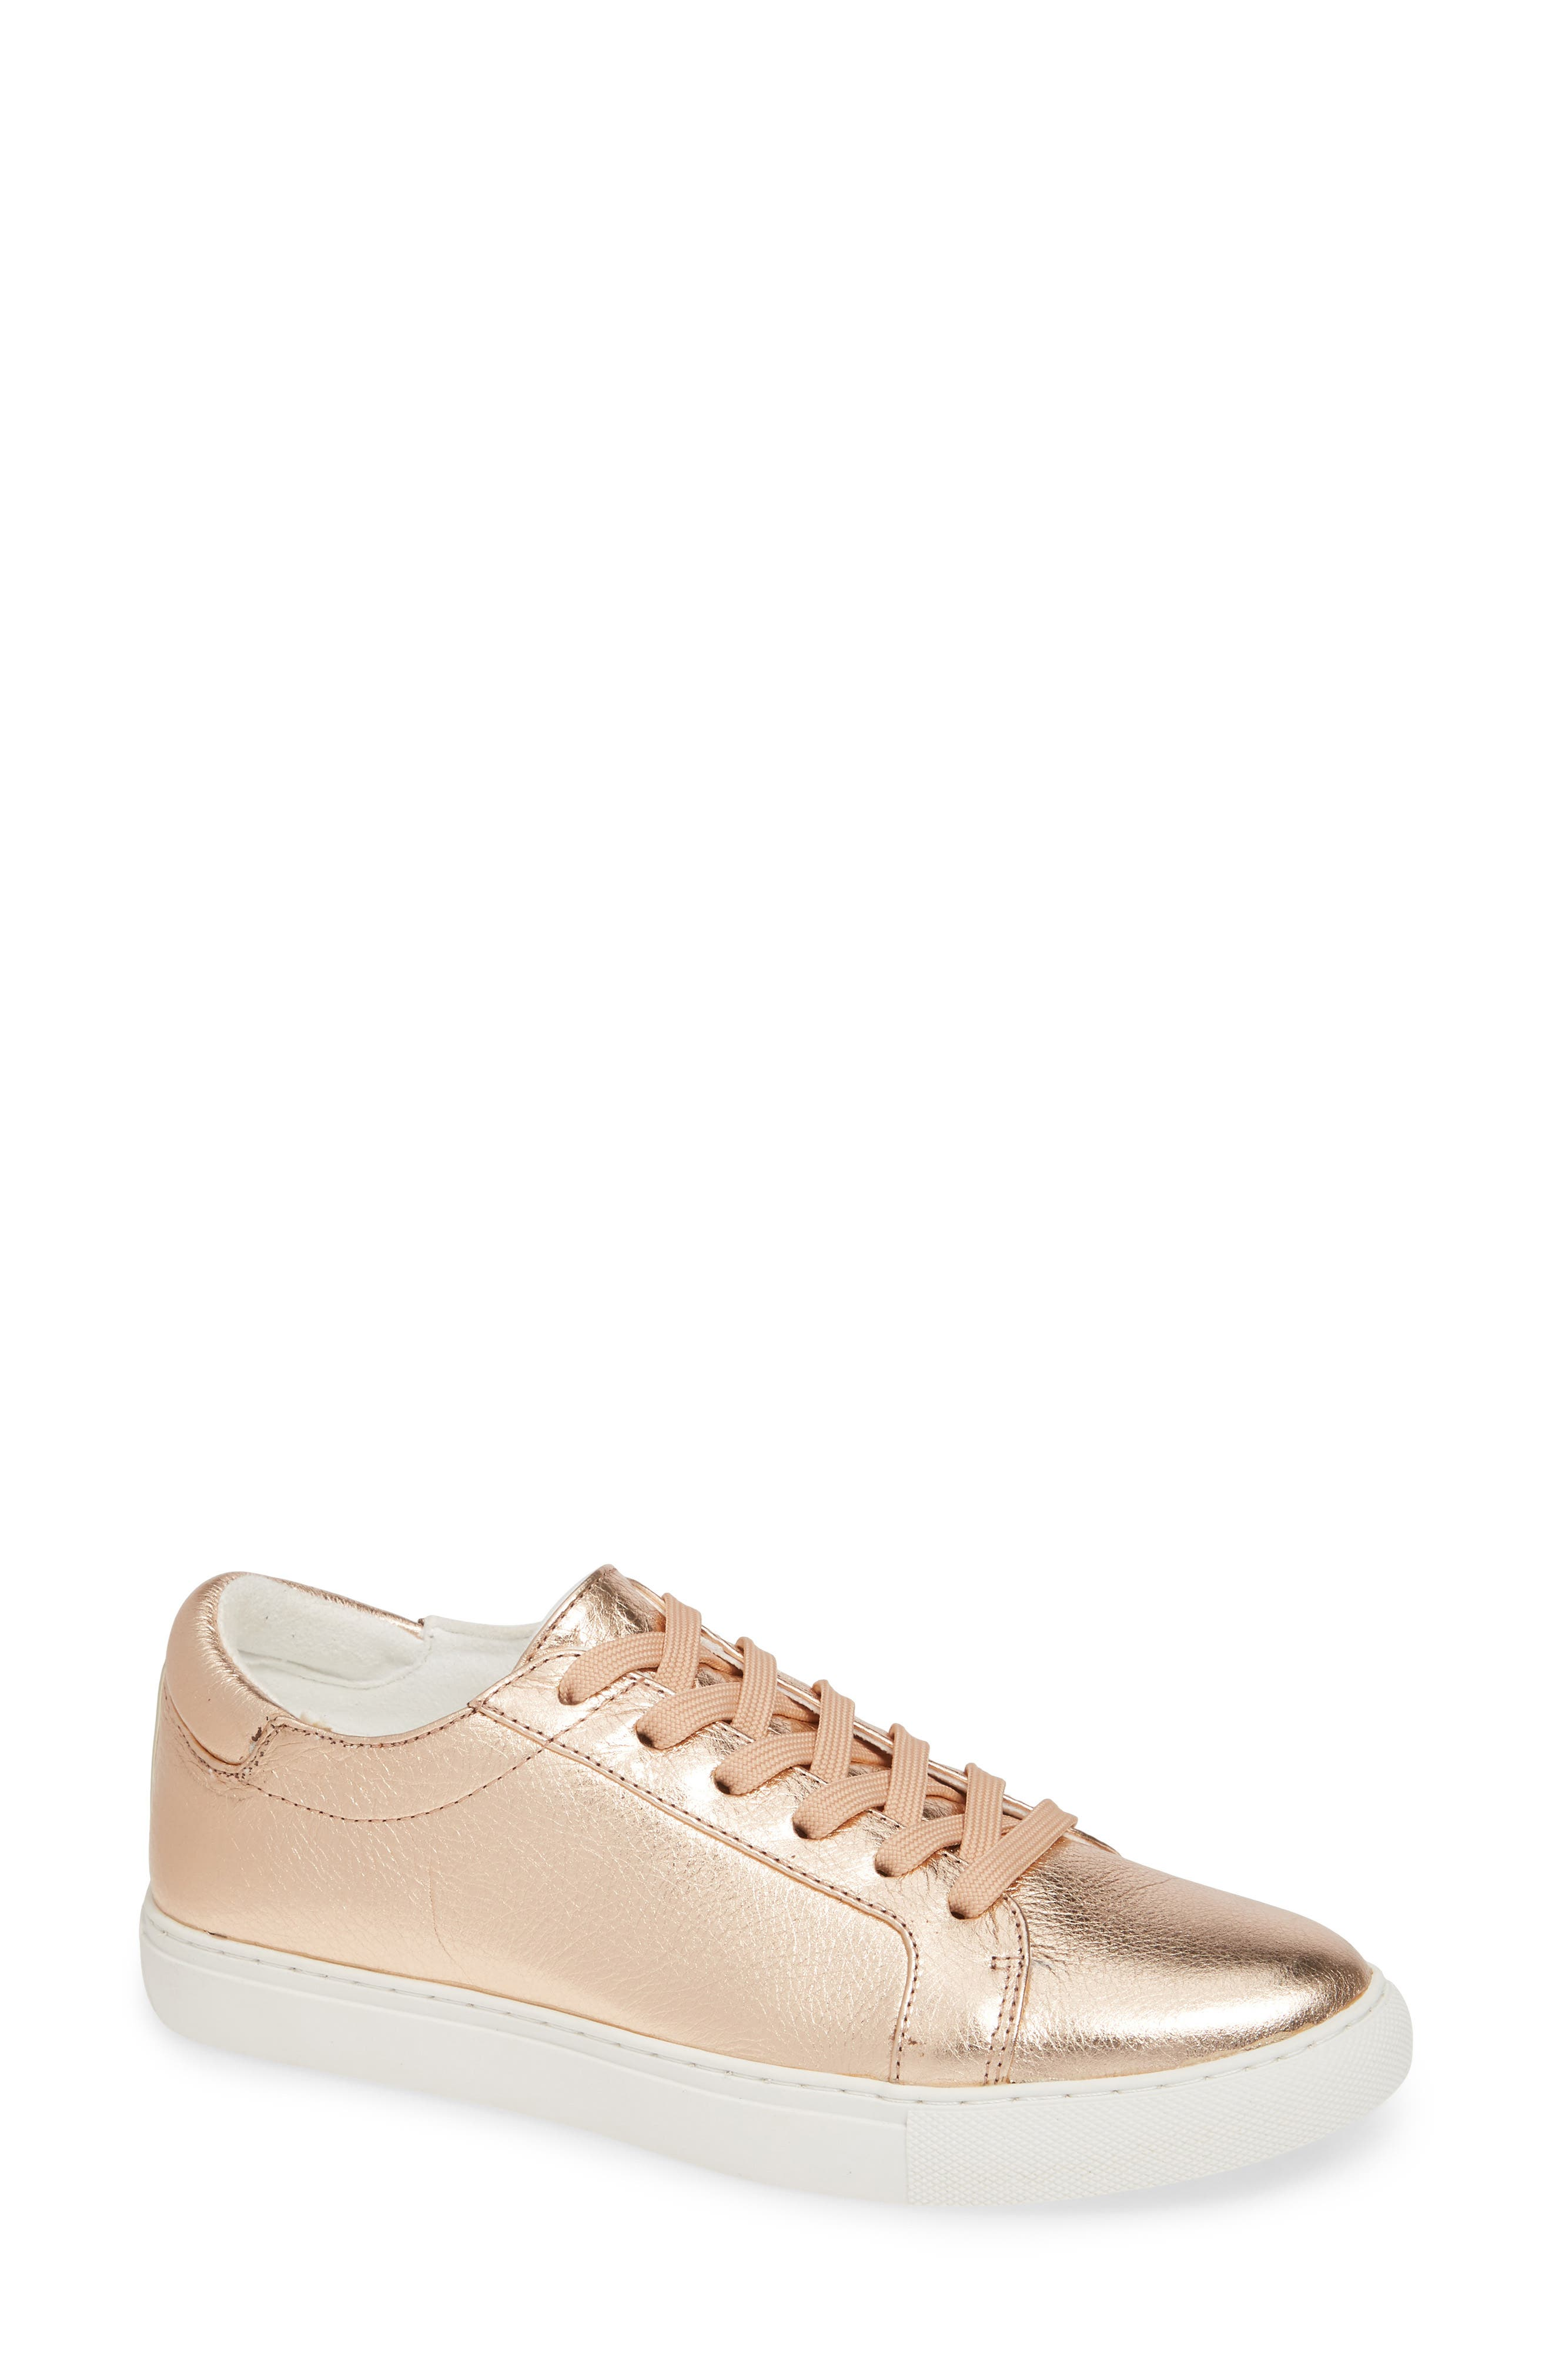 KENNETH COLE NEW YORK 'Kam' Sneaker, Main, color, ROSE GOLD LEATHER